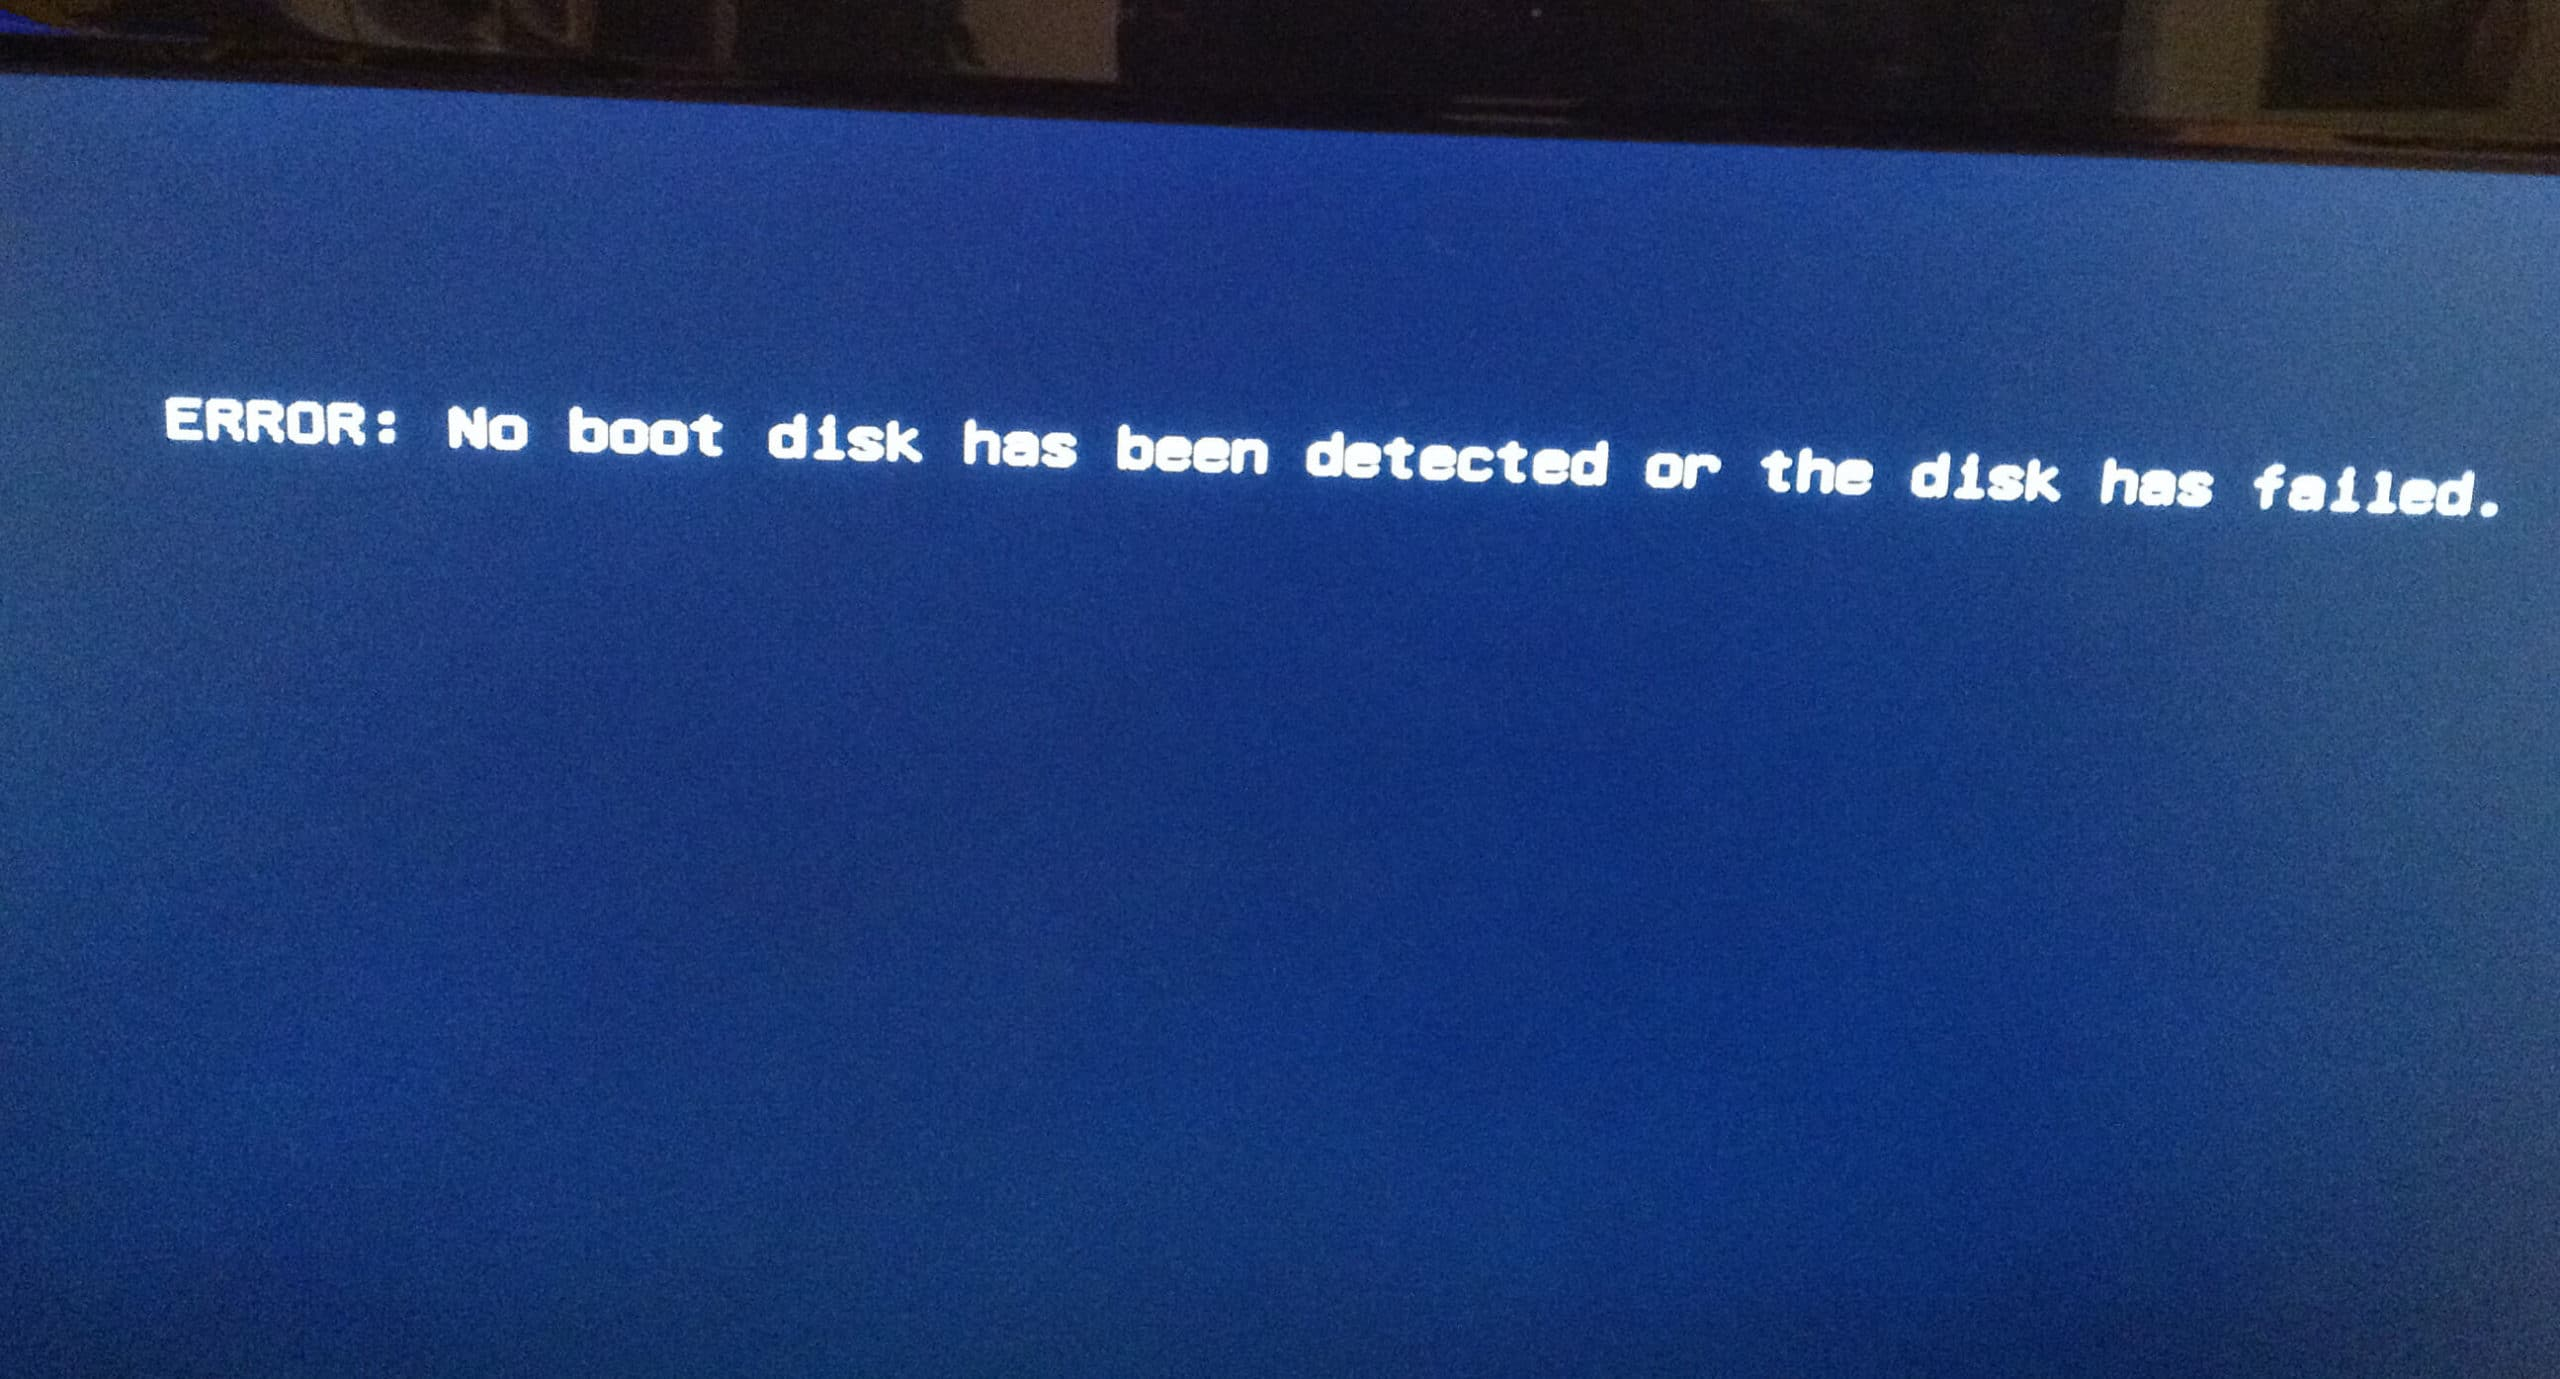 """7 Effective Solutions to """"No boot disk has been detected or the disk has failed"""" Error"""